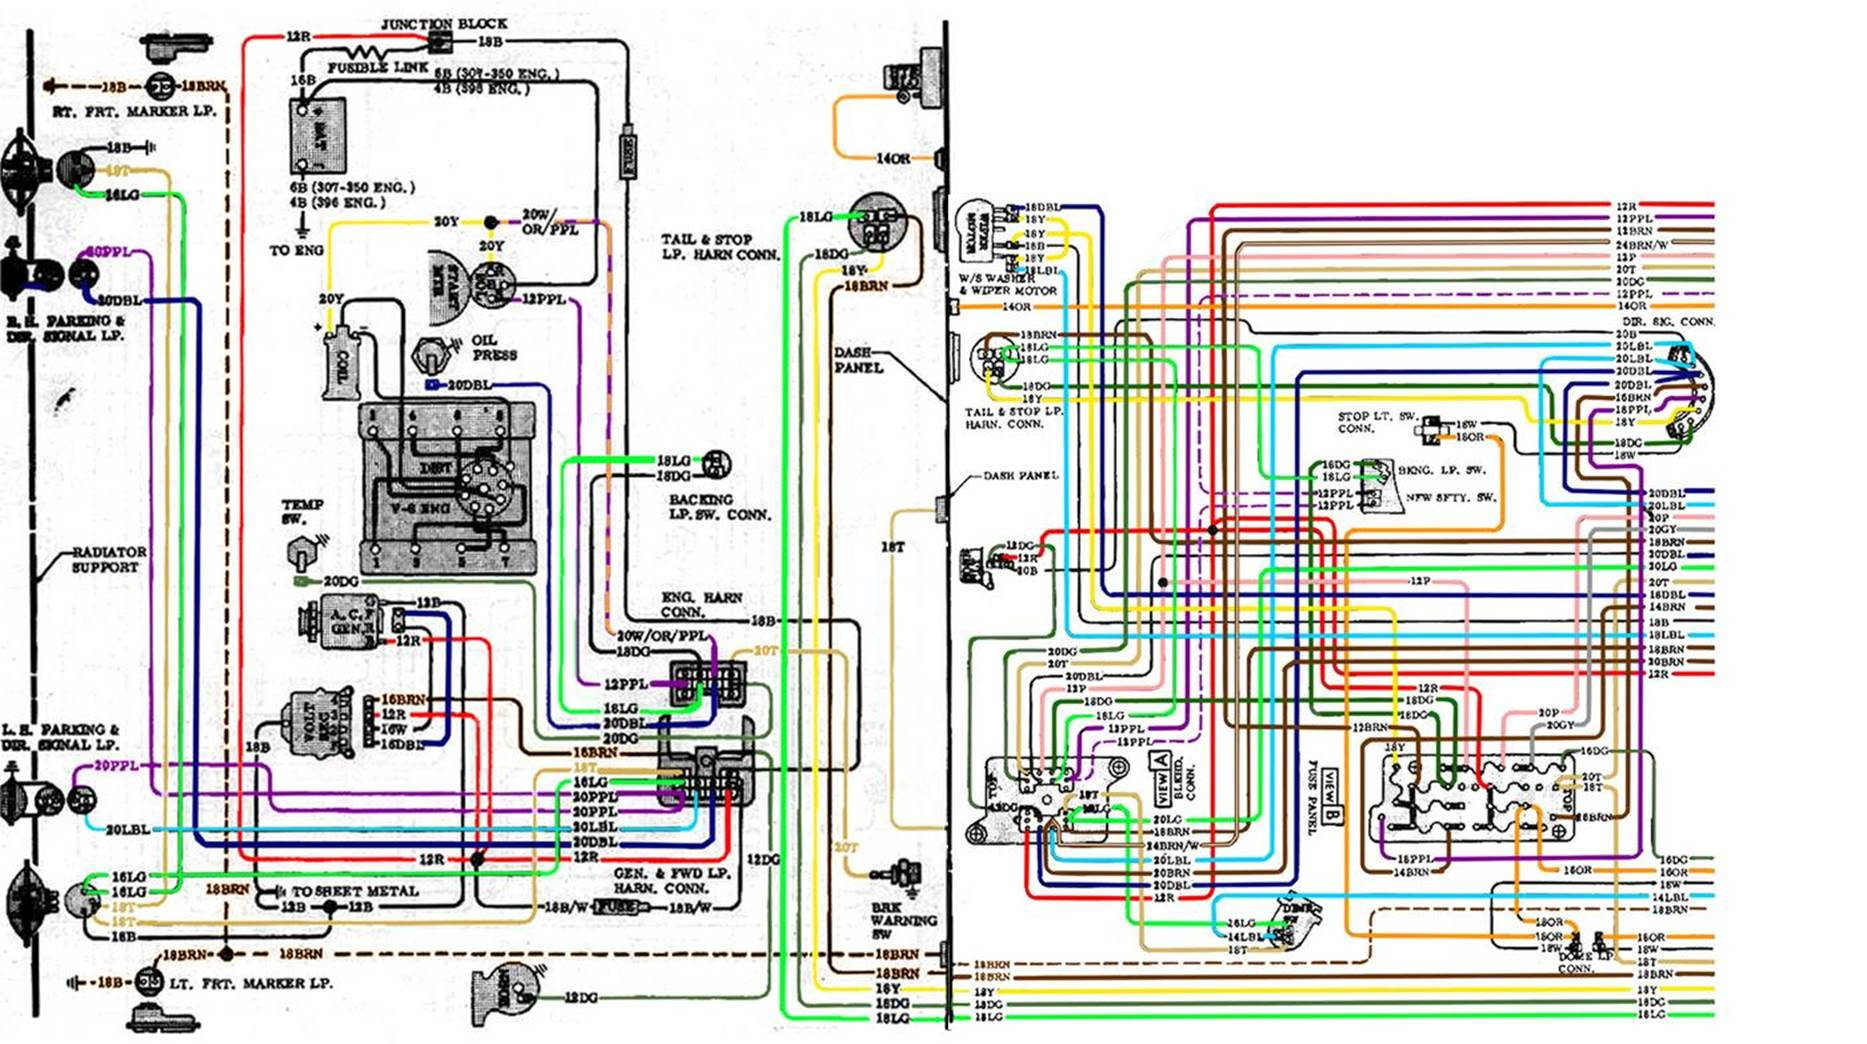 image002 67 72 chevy wiring diagram 1965 chevy c10 wiring diagram at gsmportal.co